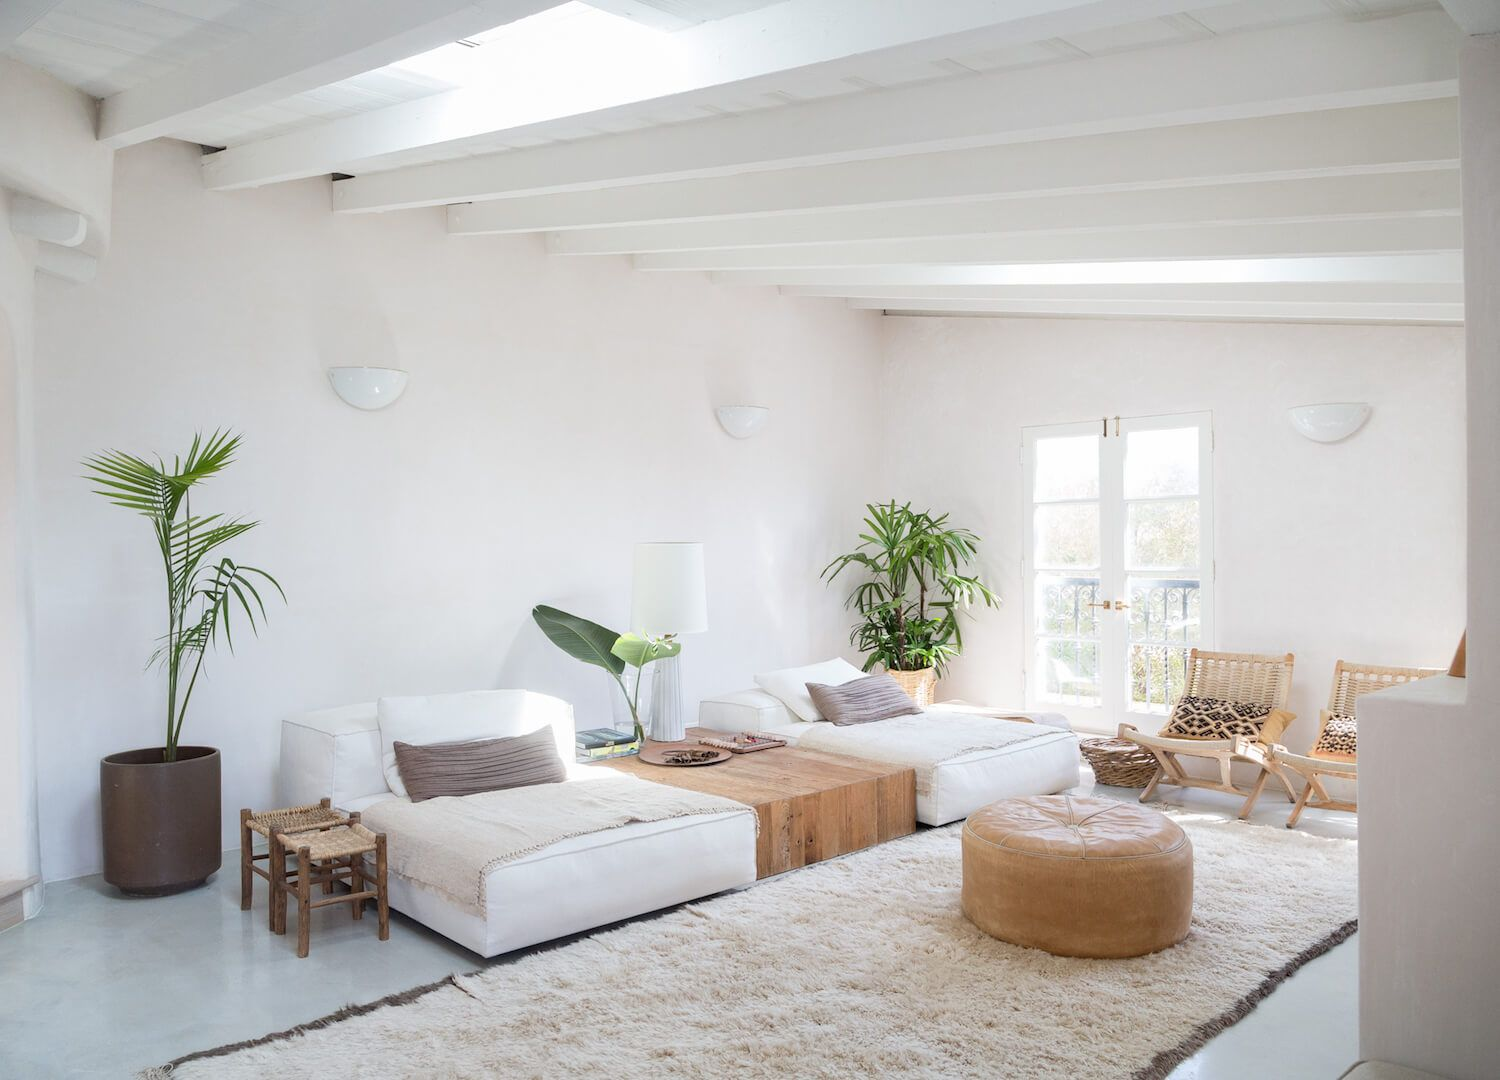 cosy yet light and airy living space, plants, trees, white beds ...